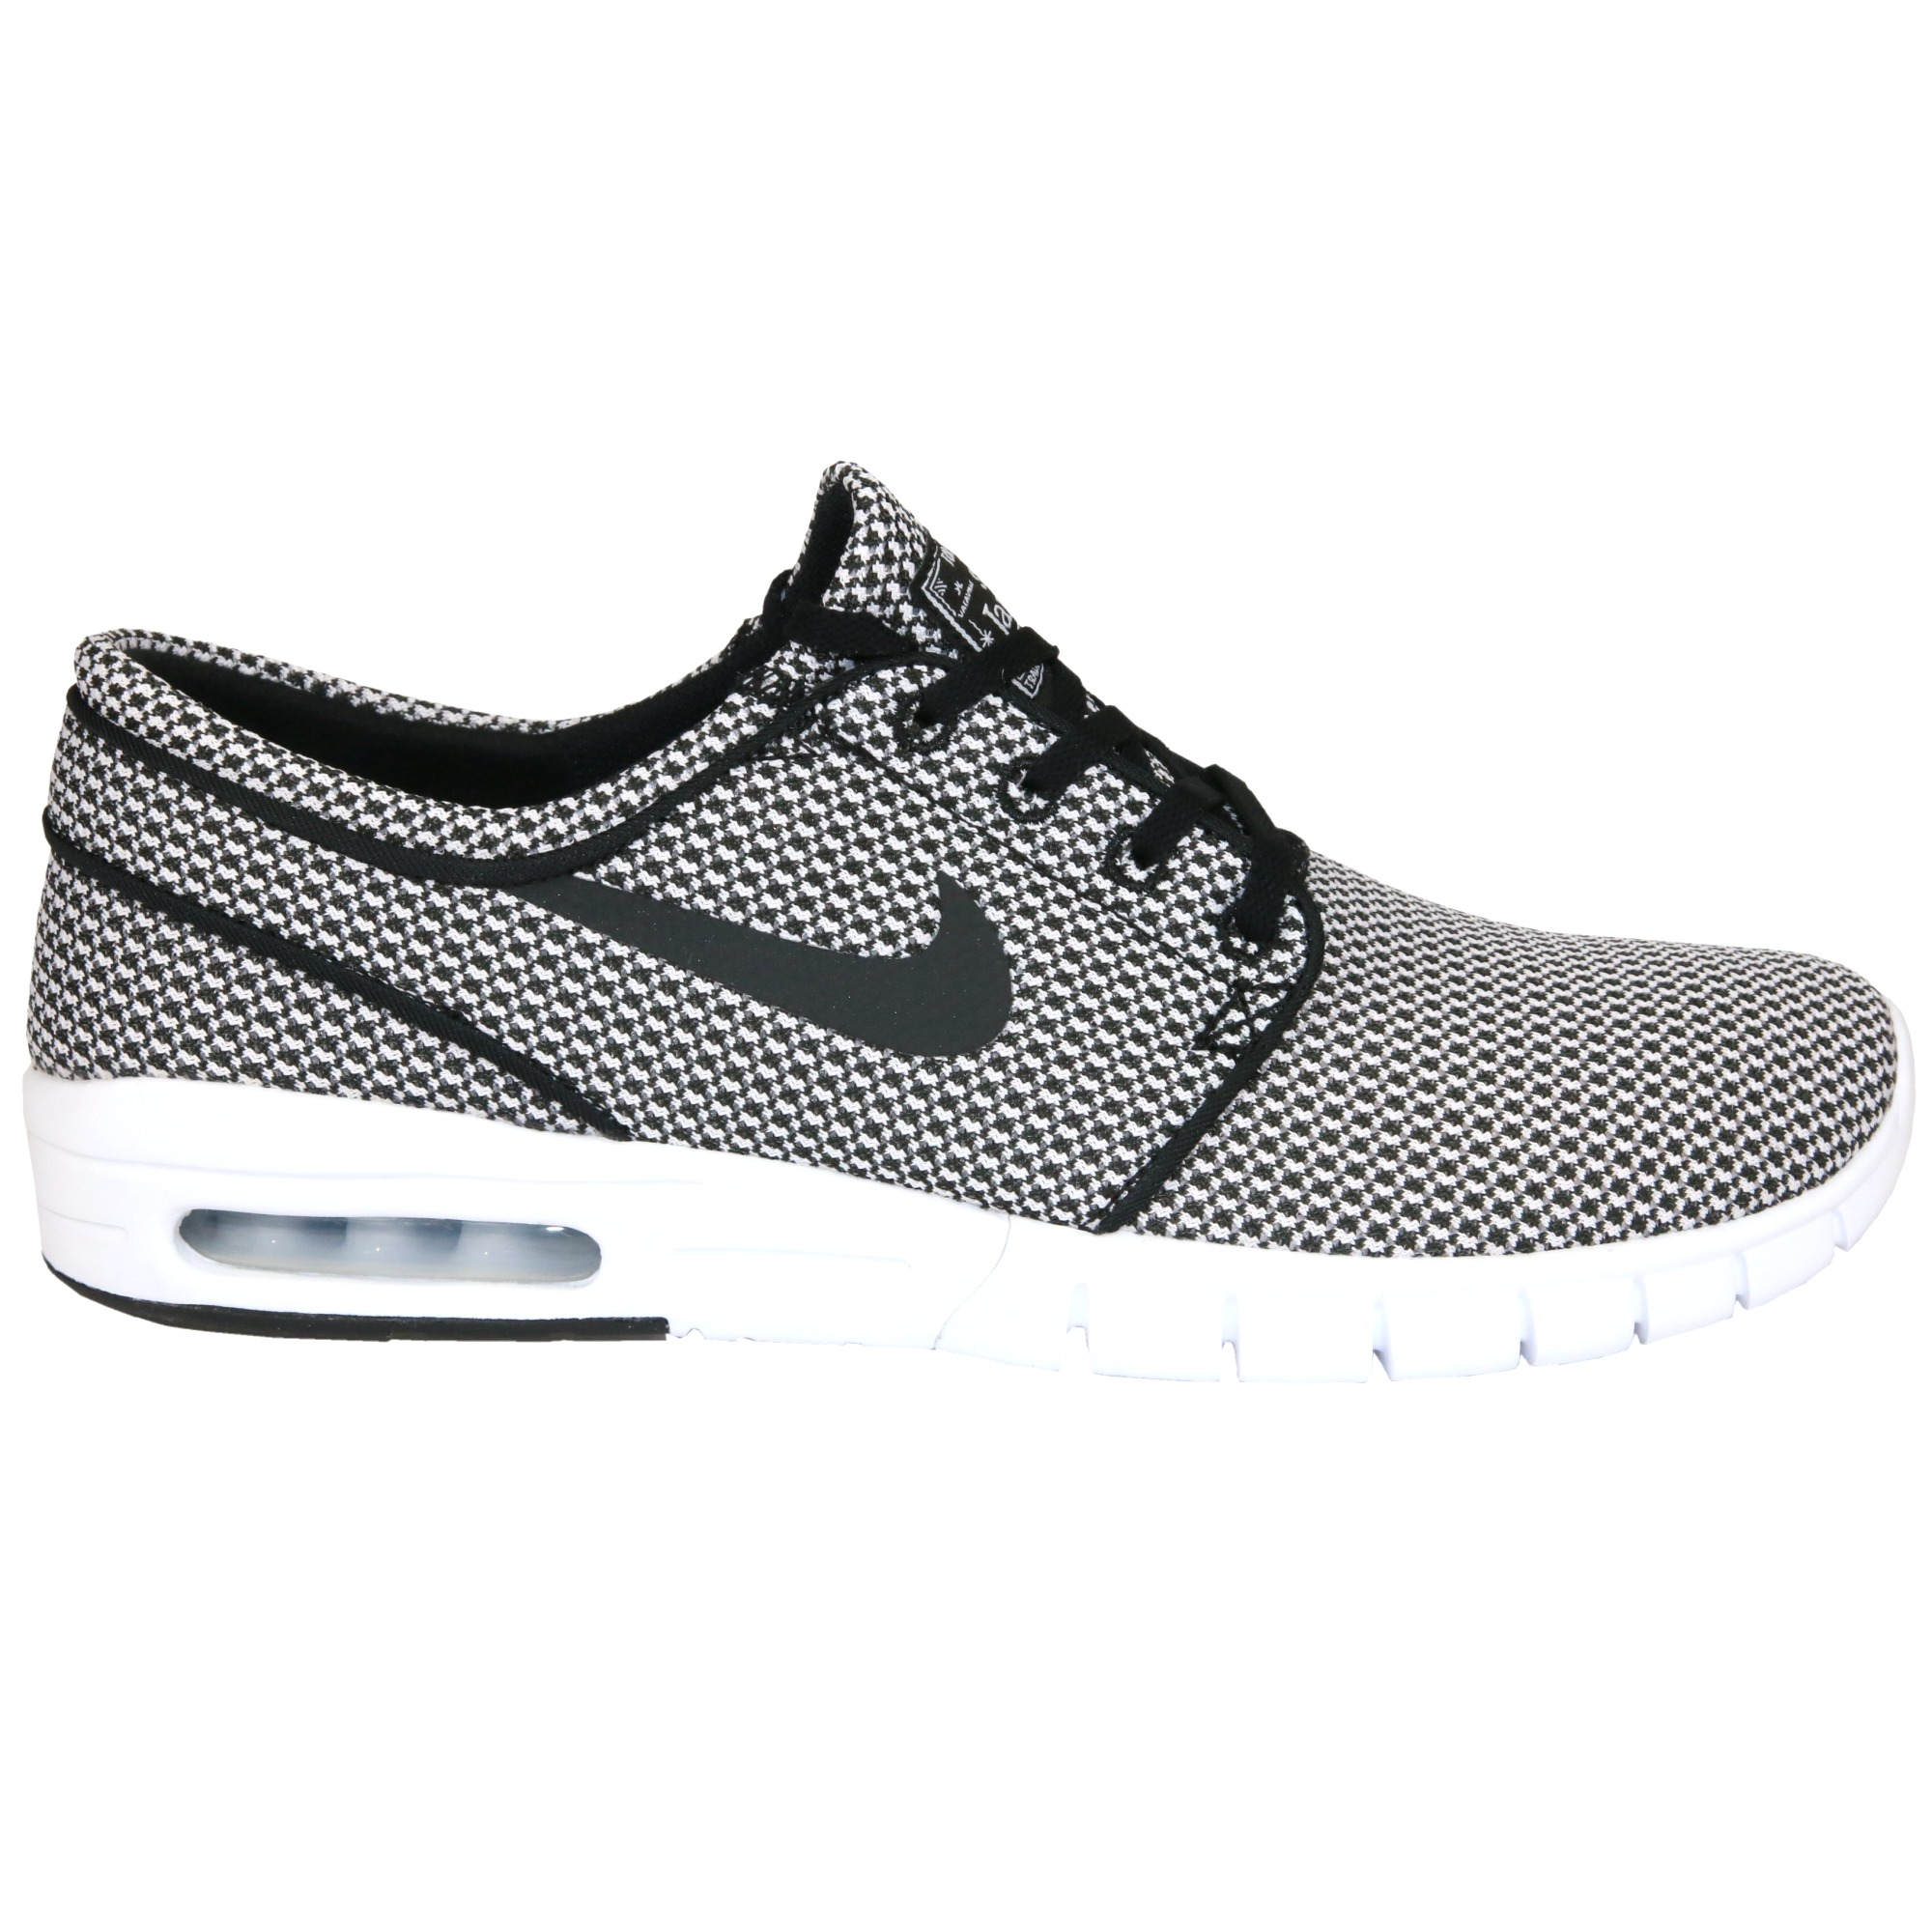 nike sb stefan janoski max schuhe turnschuhe sneaker damen herren wei schwarz ebay. Black Bedroom Furniture Sets. Home Design Ideas